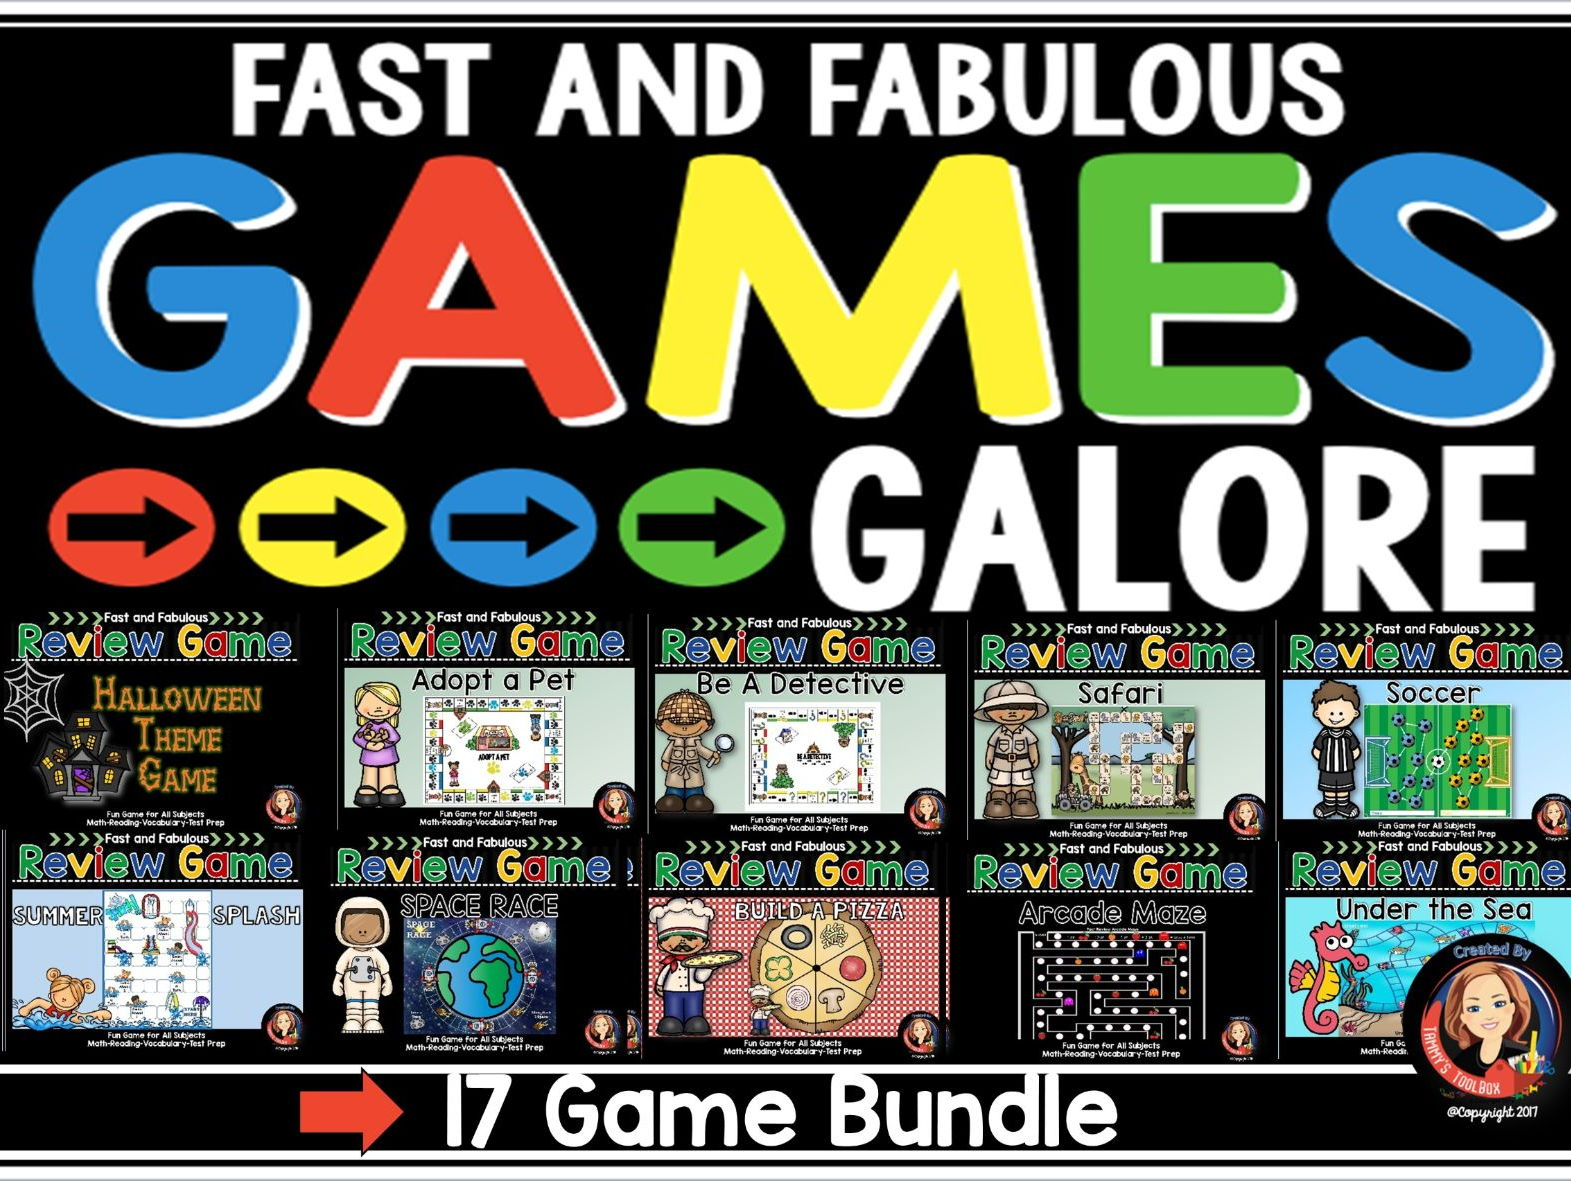 Games Galore - Fact Review Games for Any Subject